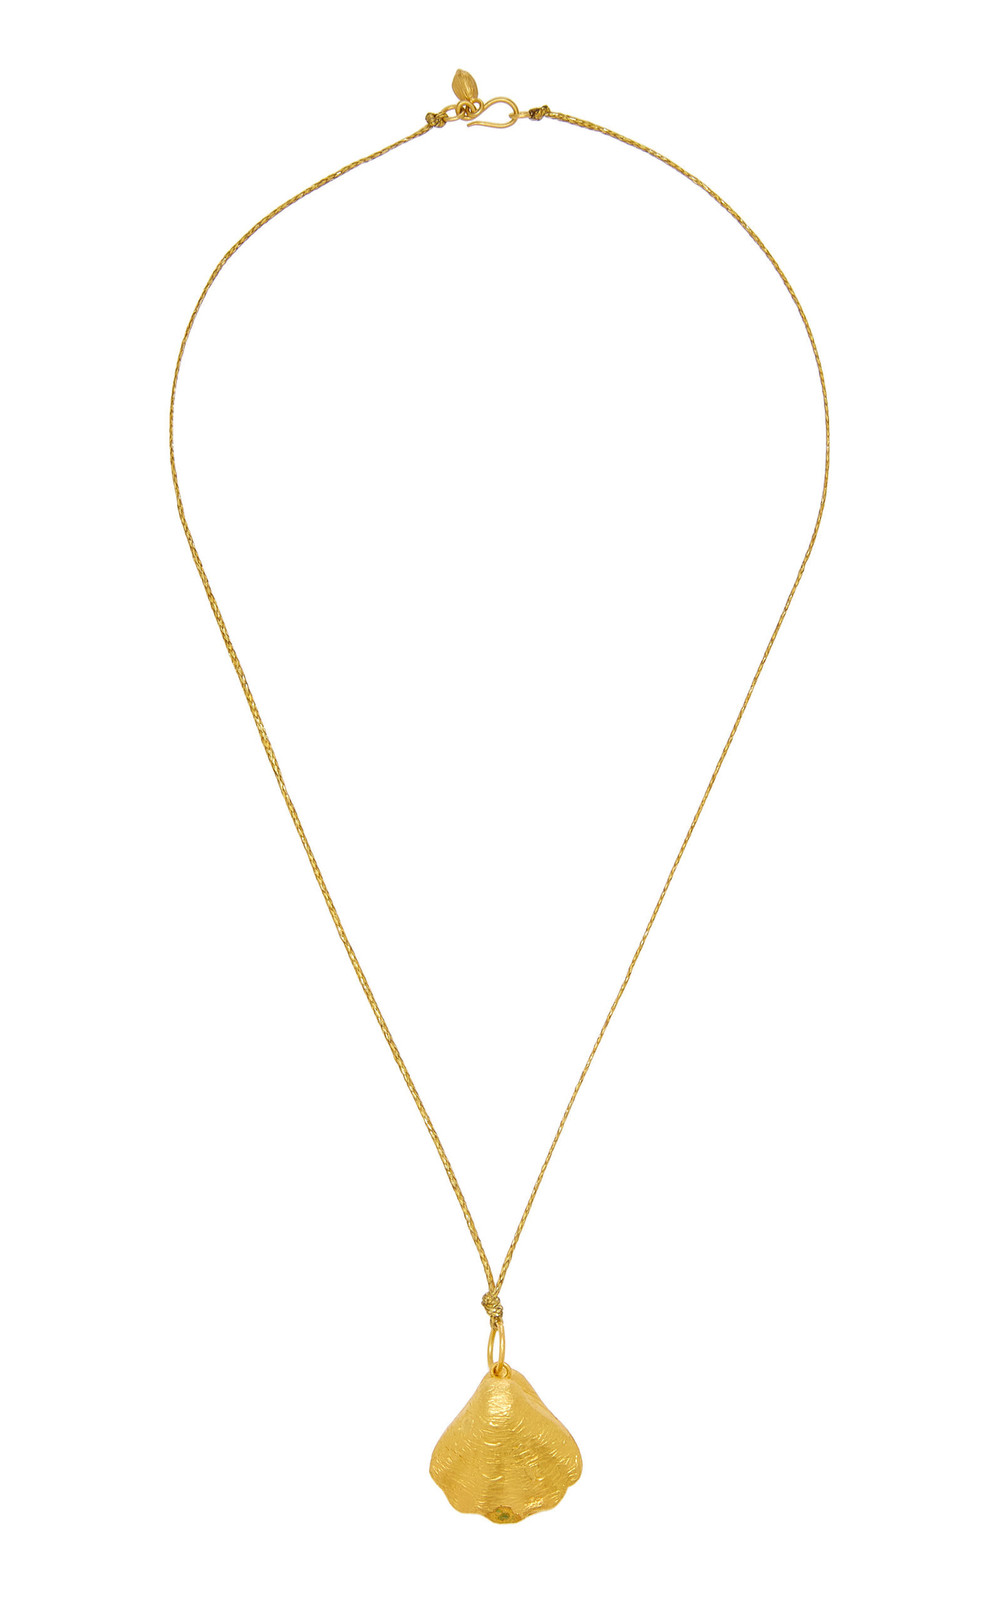 Pippa Small Large Oyster Pendant On Cord in gold